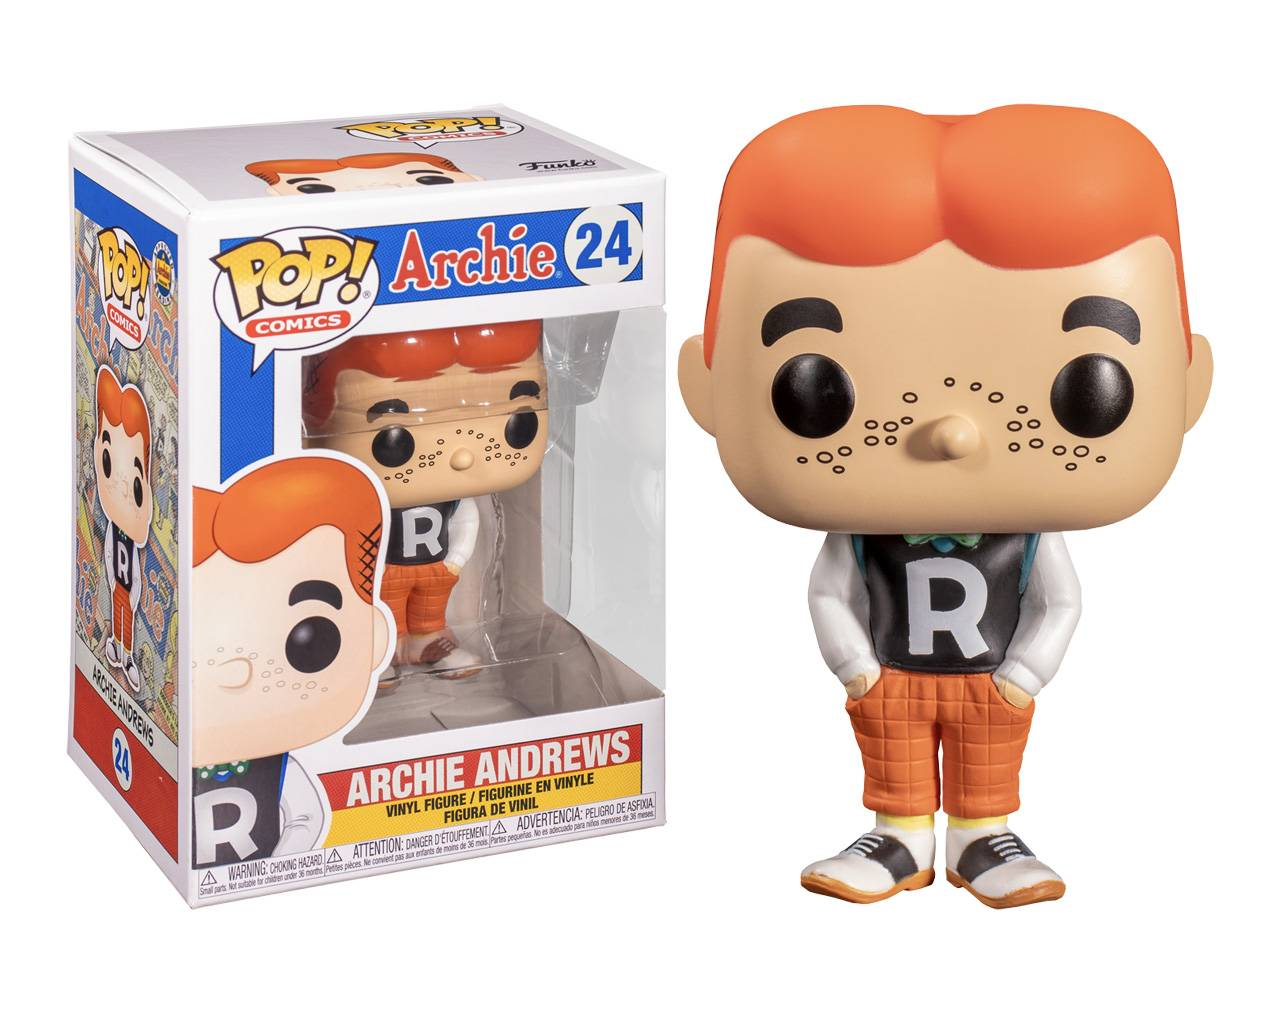 Archie Andrews Pop! Vinyl